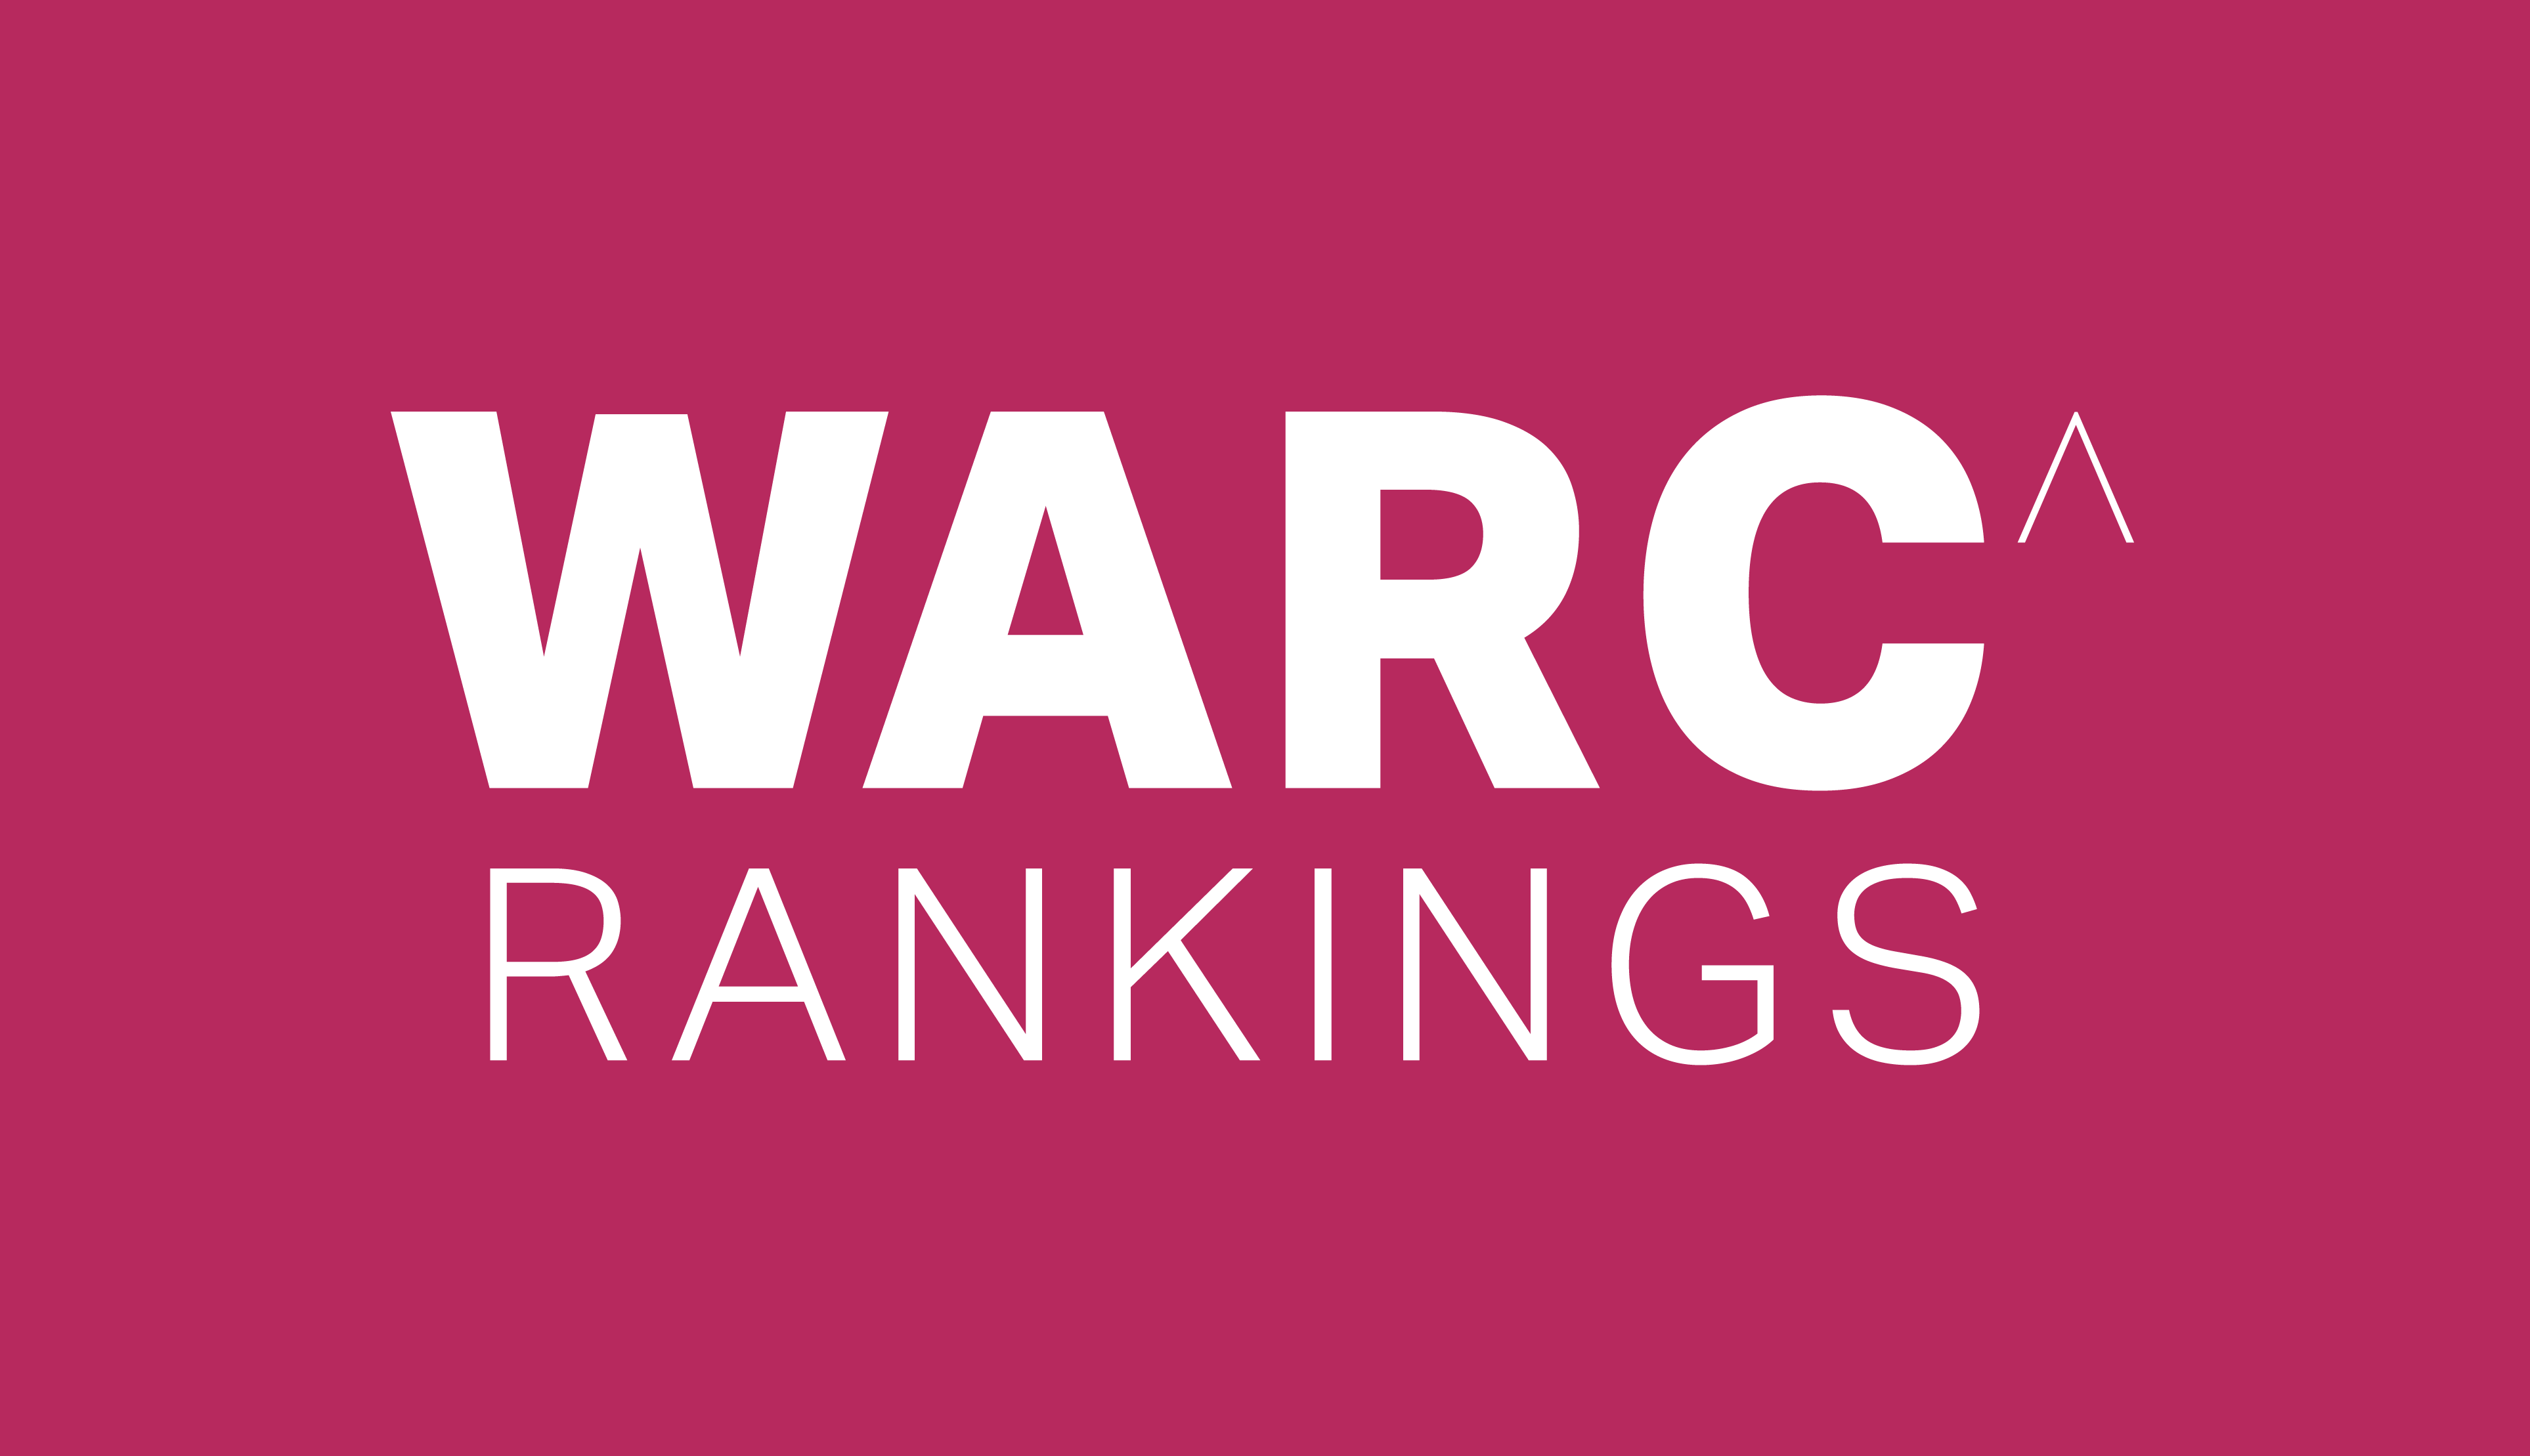 WARC Rankings